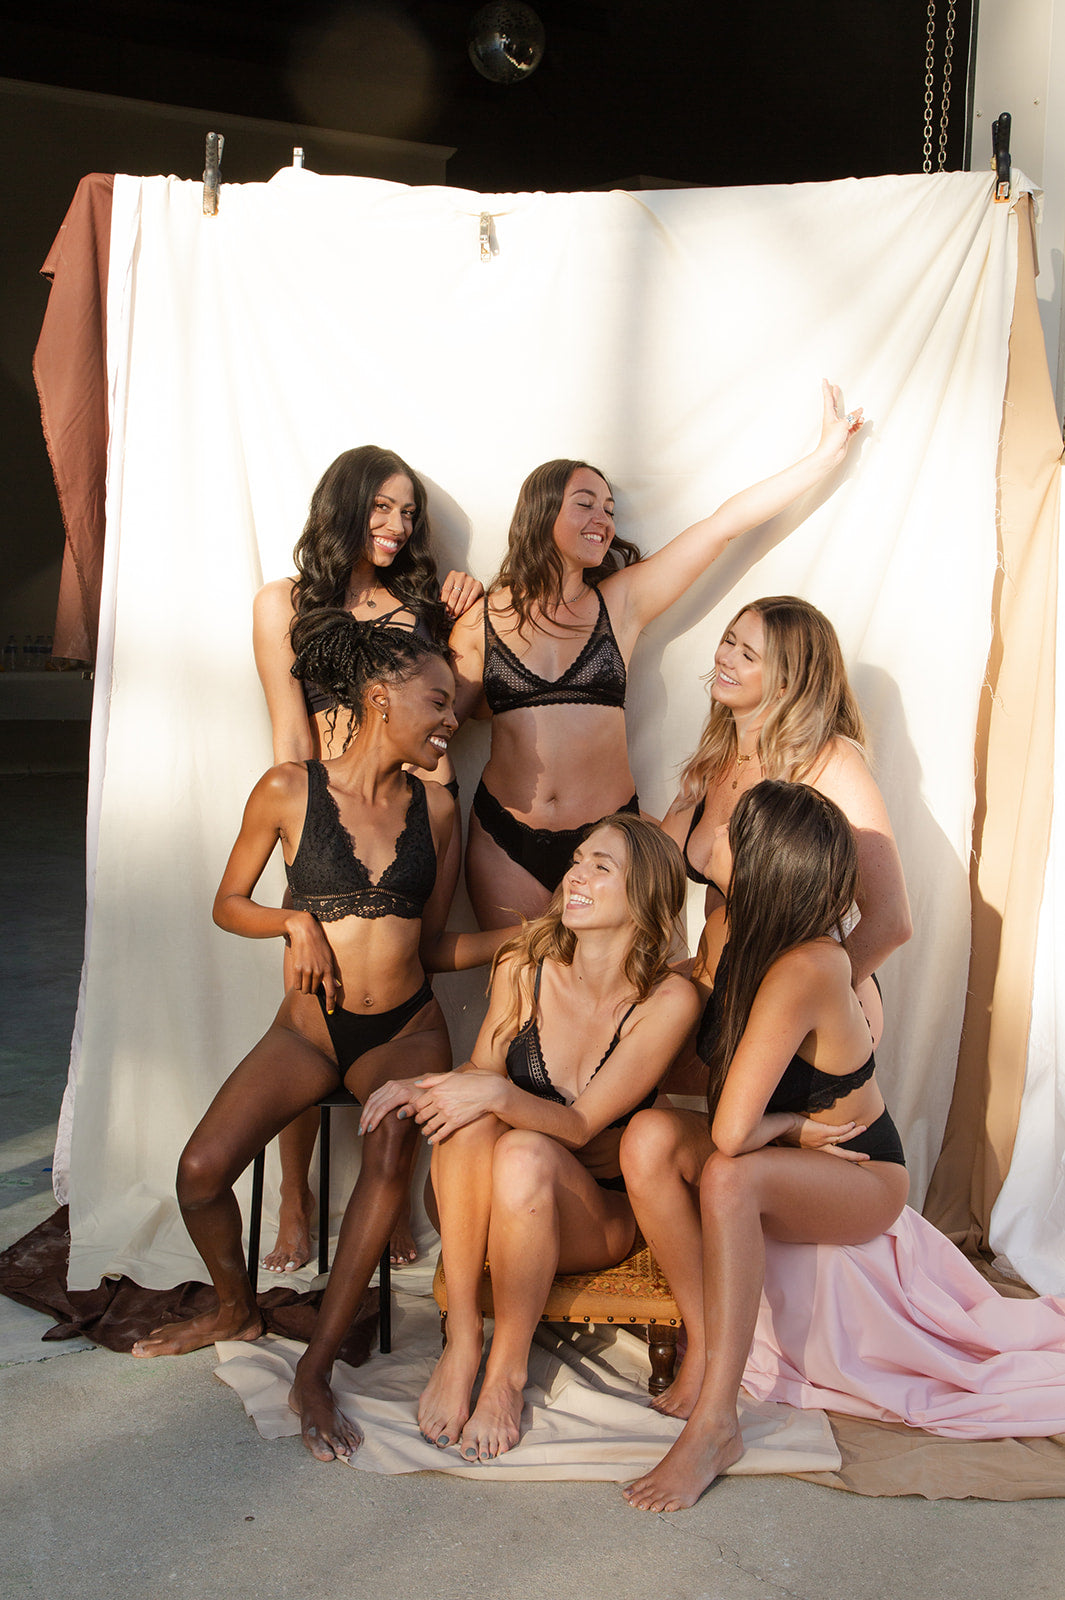 Group Photo from Fruity Boob-eez Shoot - Diverse group of women - Photography inspo